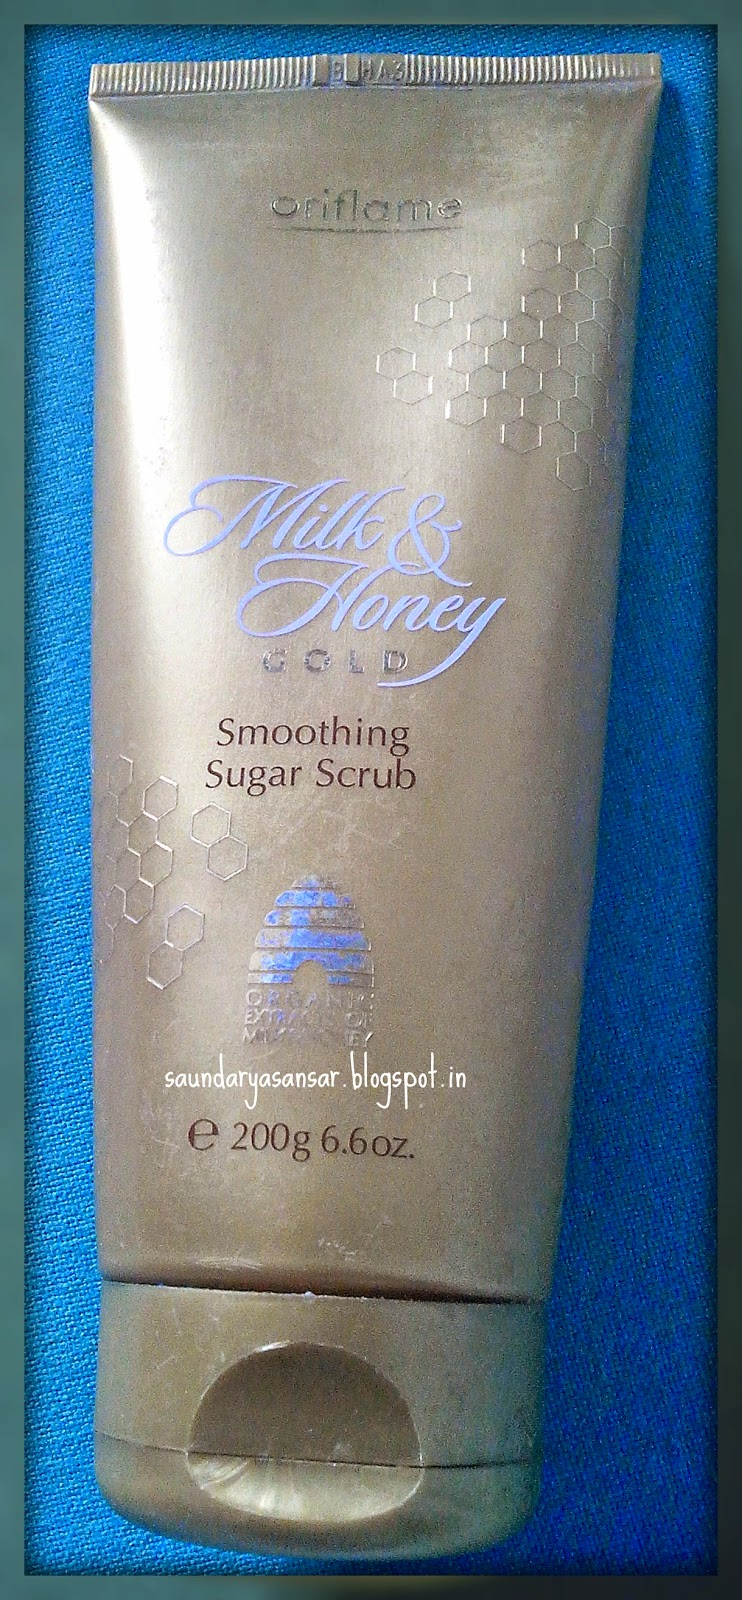 Oriflame Sweden MILK & HONEY Gold Smoothing Sugar Scrub Review